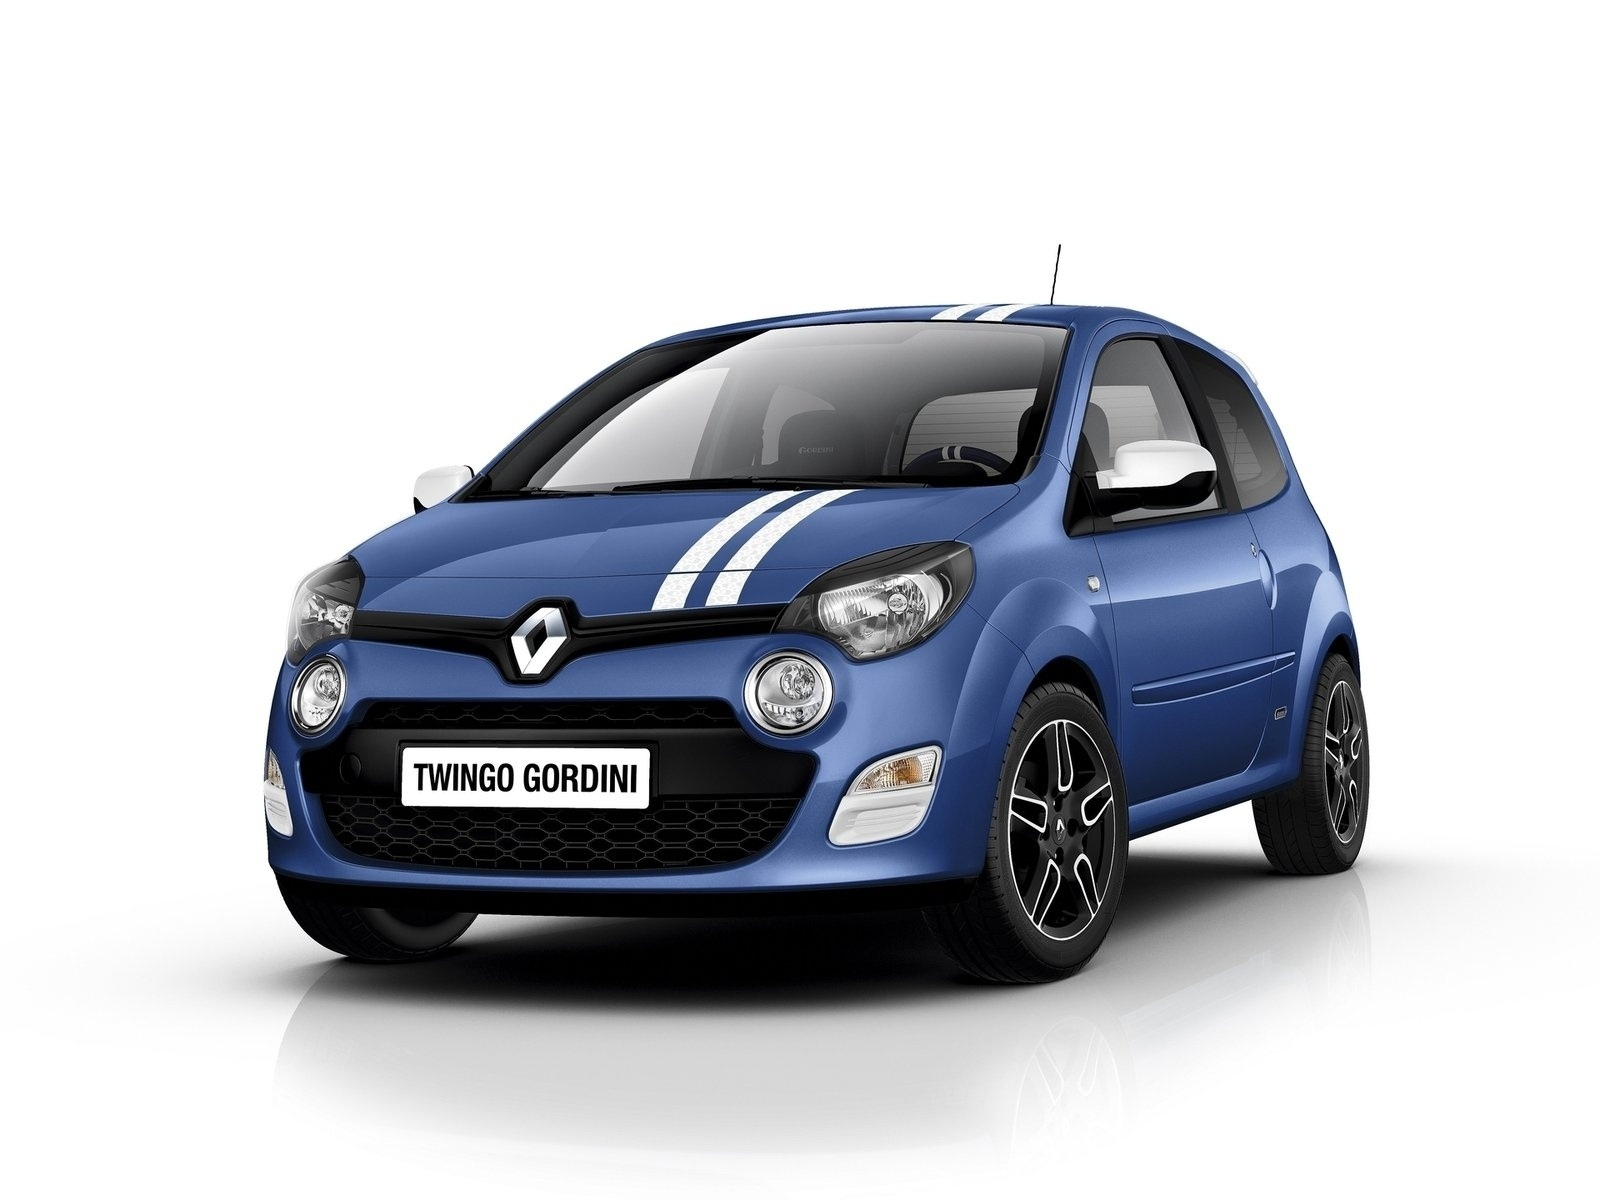 renault twingo rs gordini renault wallpaper 26793105 fanpop. Black Bedroom Furniture Sets. Home Design Ideas